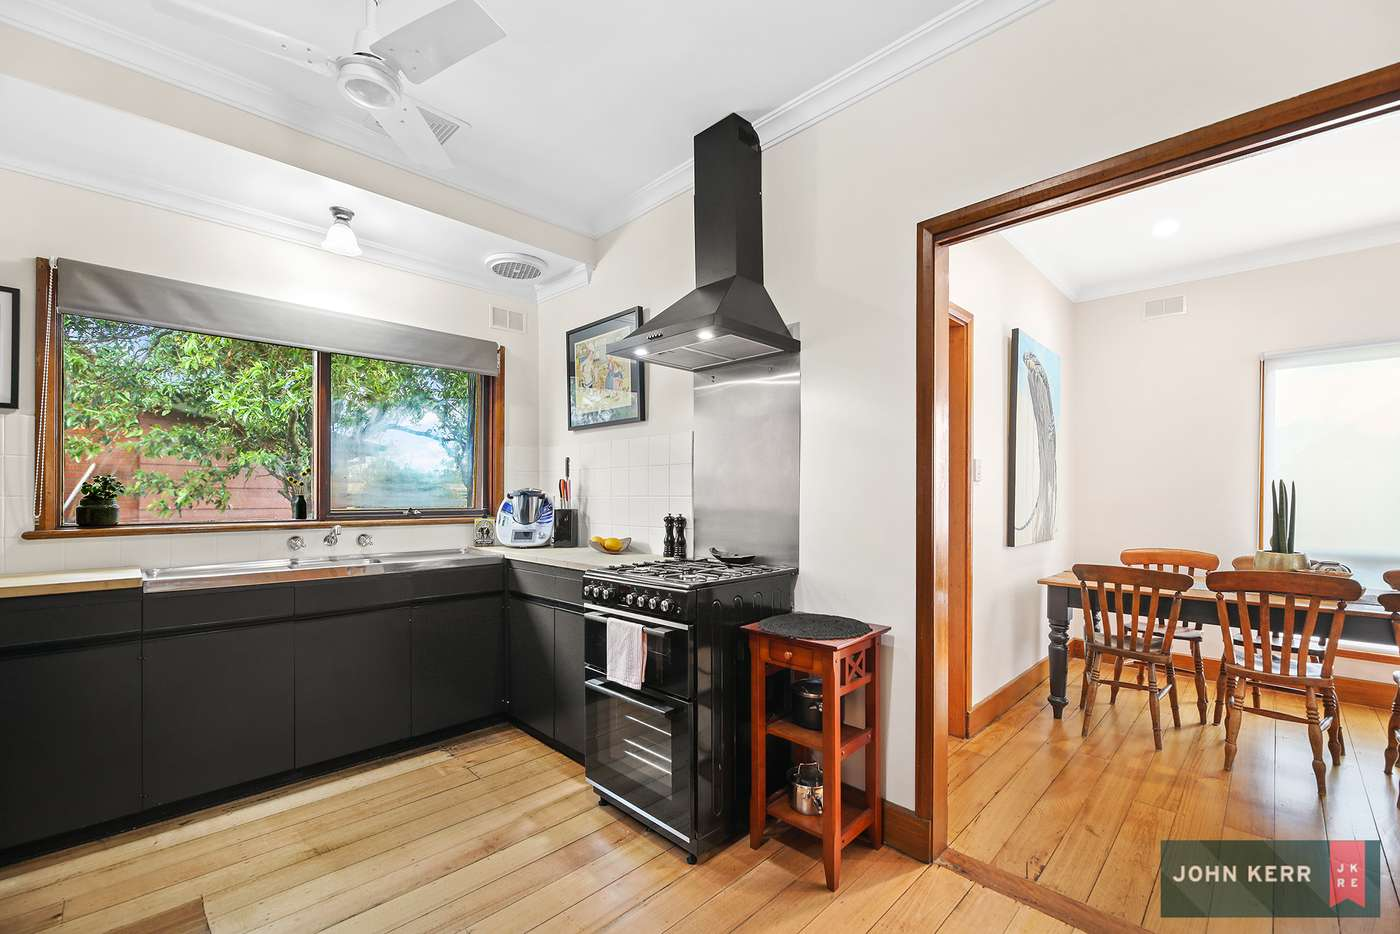 Seventh view of Homely house listing, 3 Avon Court, Newborough VIC 3825